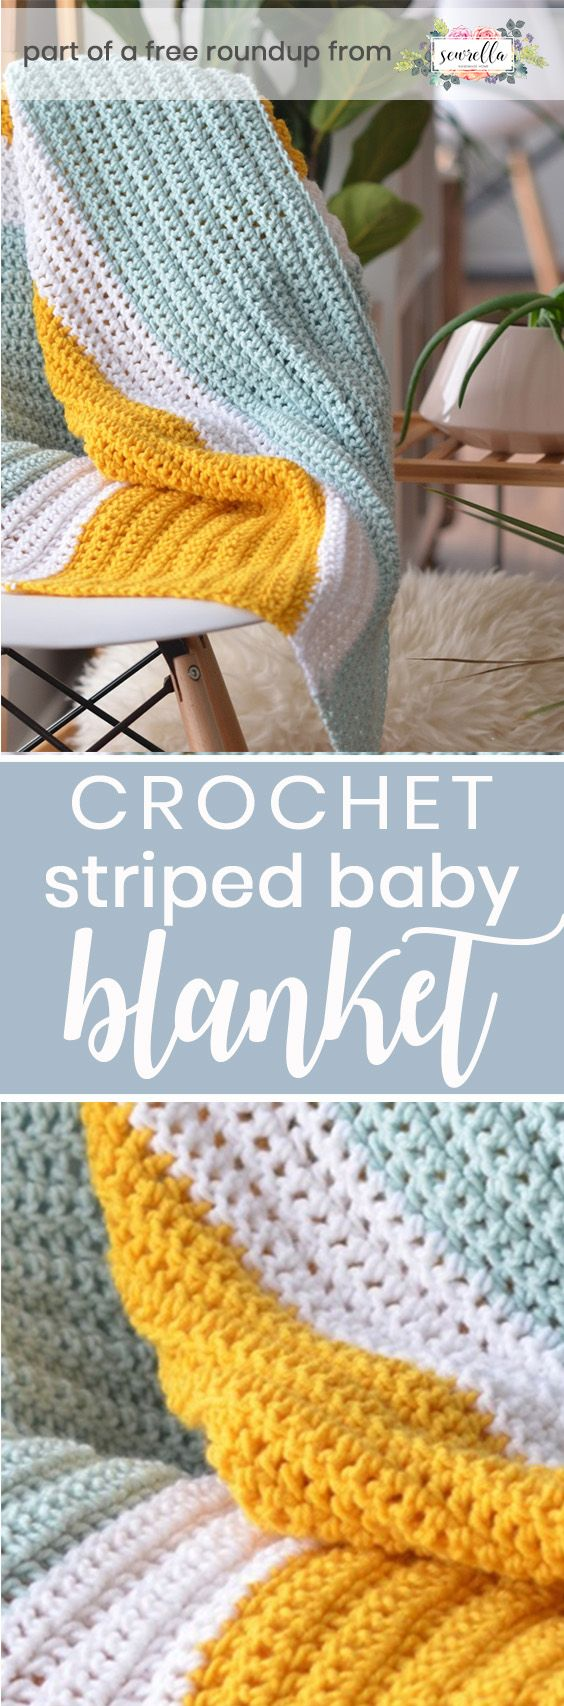 Get the free crochet pattern for this simply stripes baby blanket from  M.E. Russell featured in my gender neutral baby blanket FREE pattern roundup!